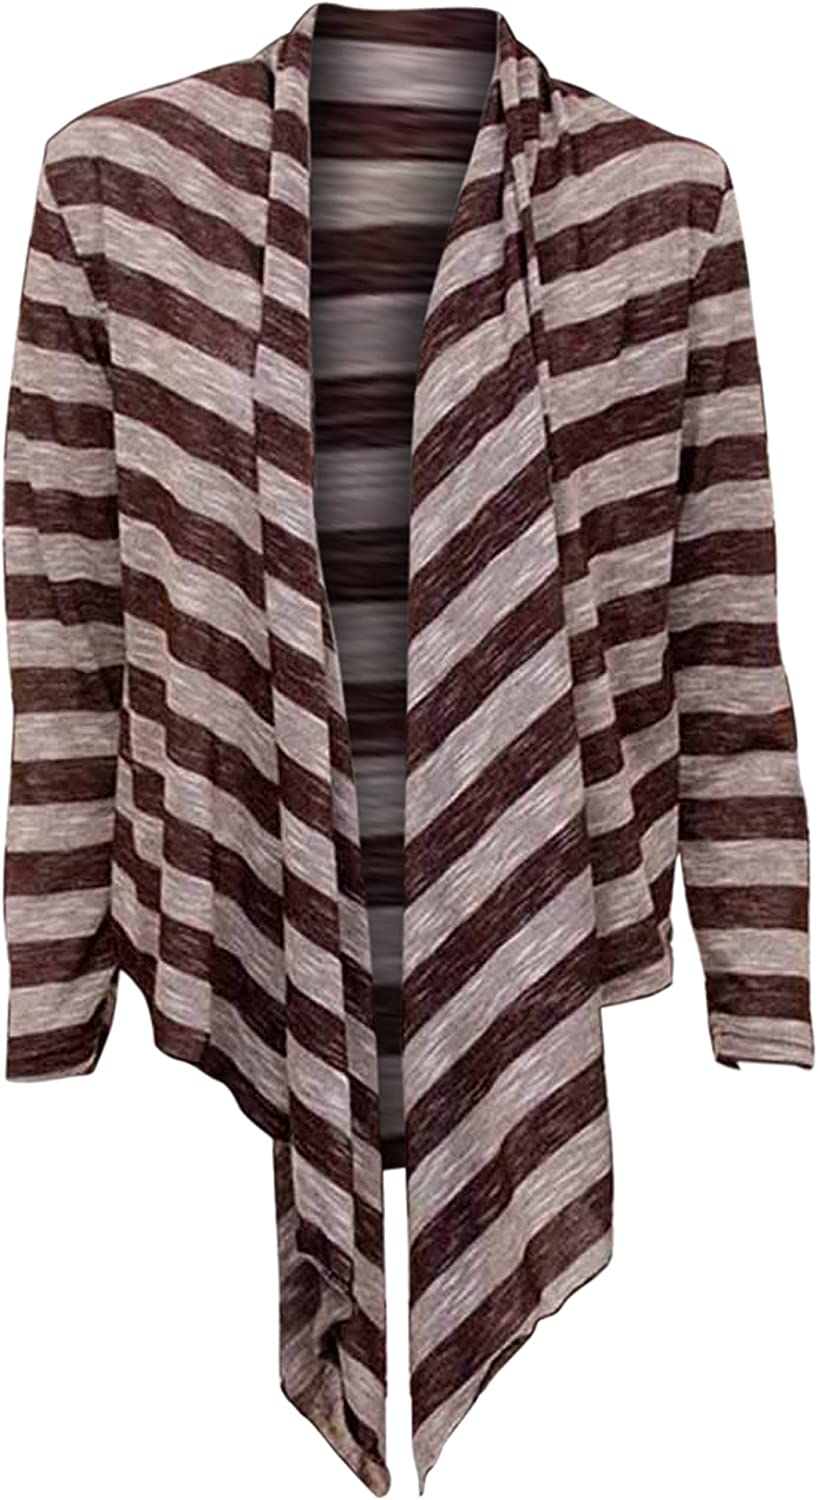 No. 1 Funwear Factory Striped Long Sleeve Flowing Shrug Sweater